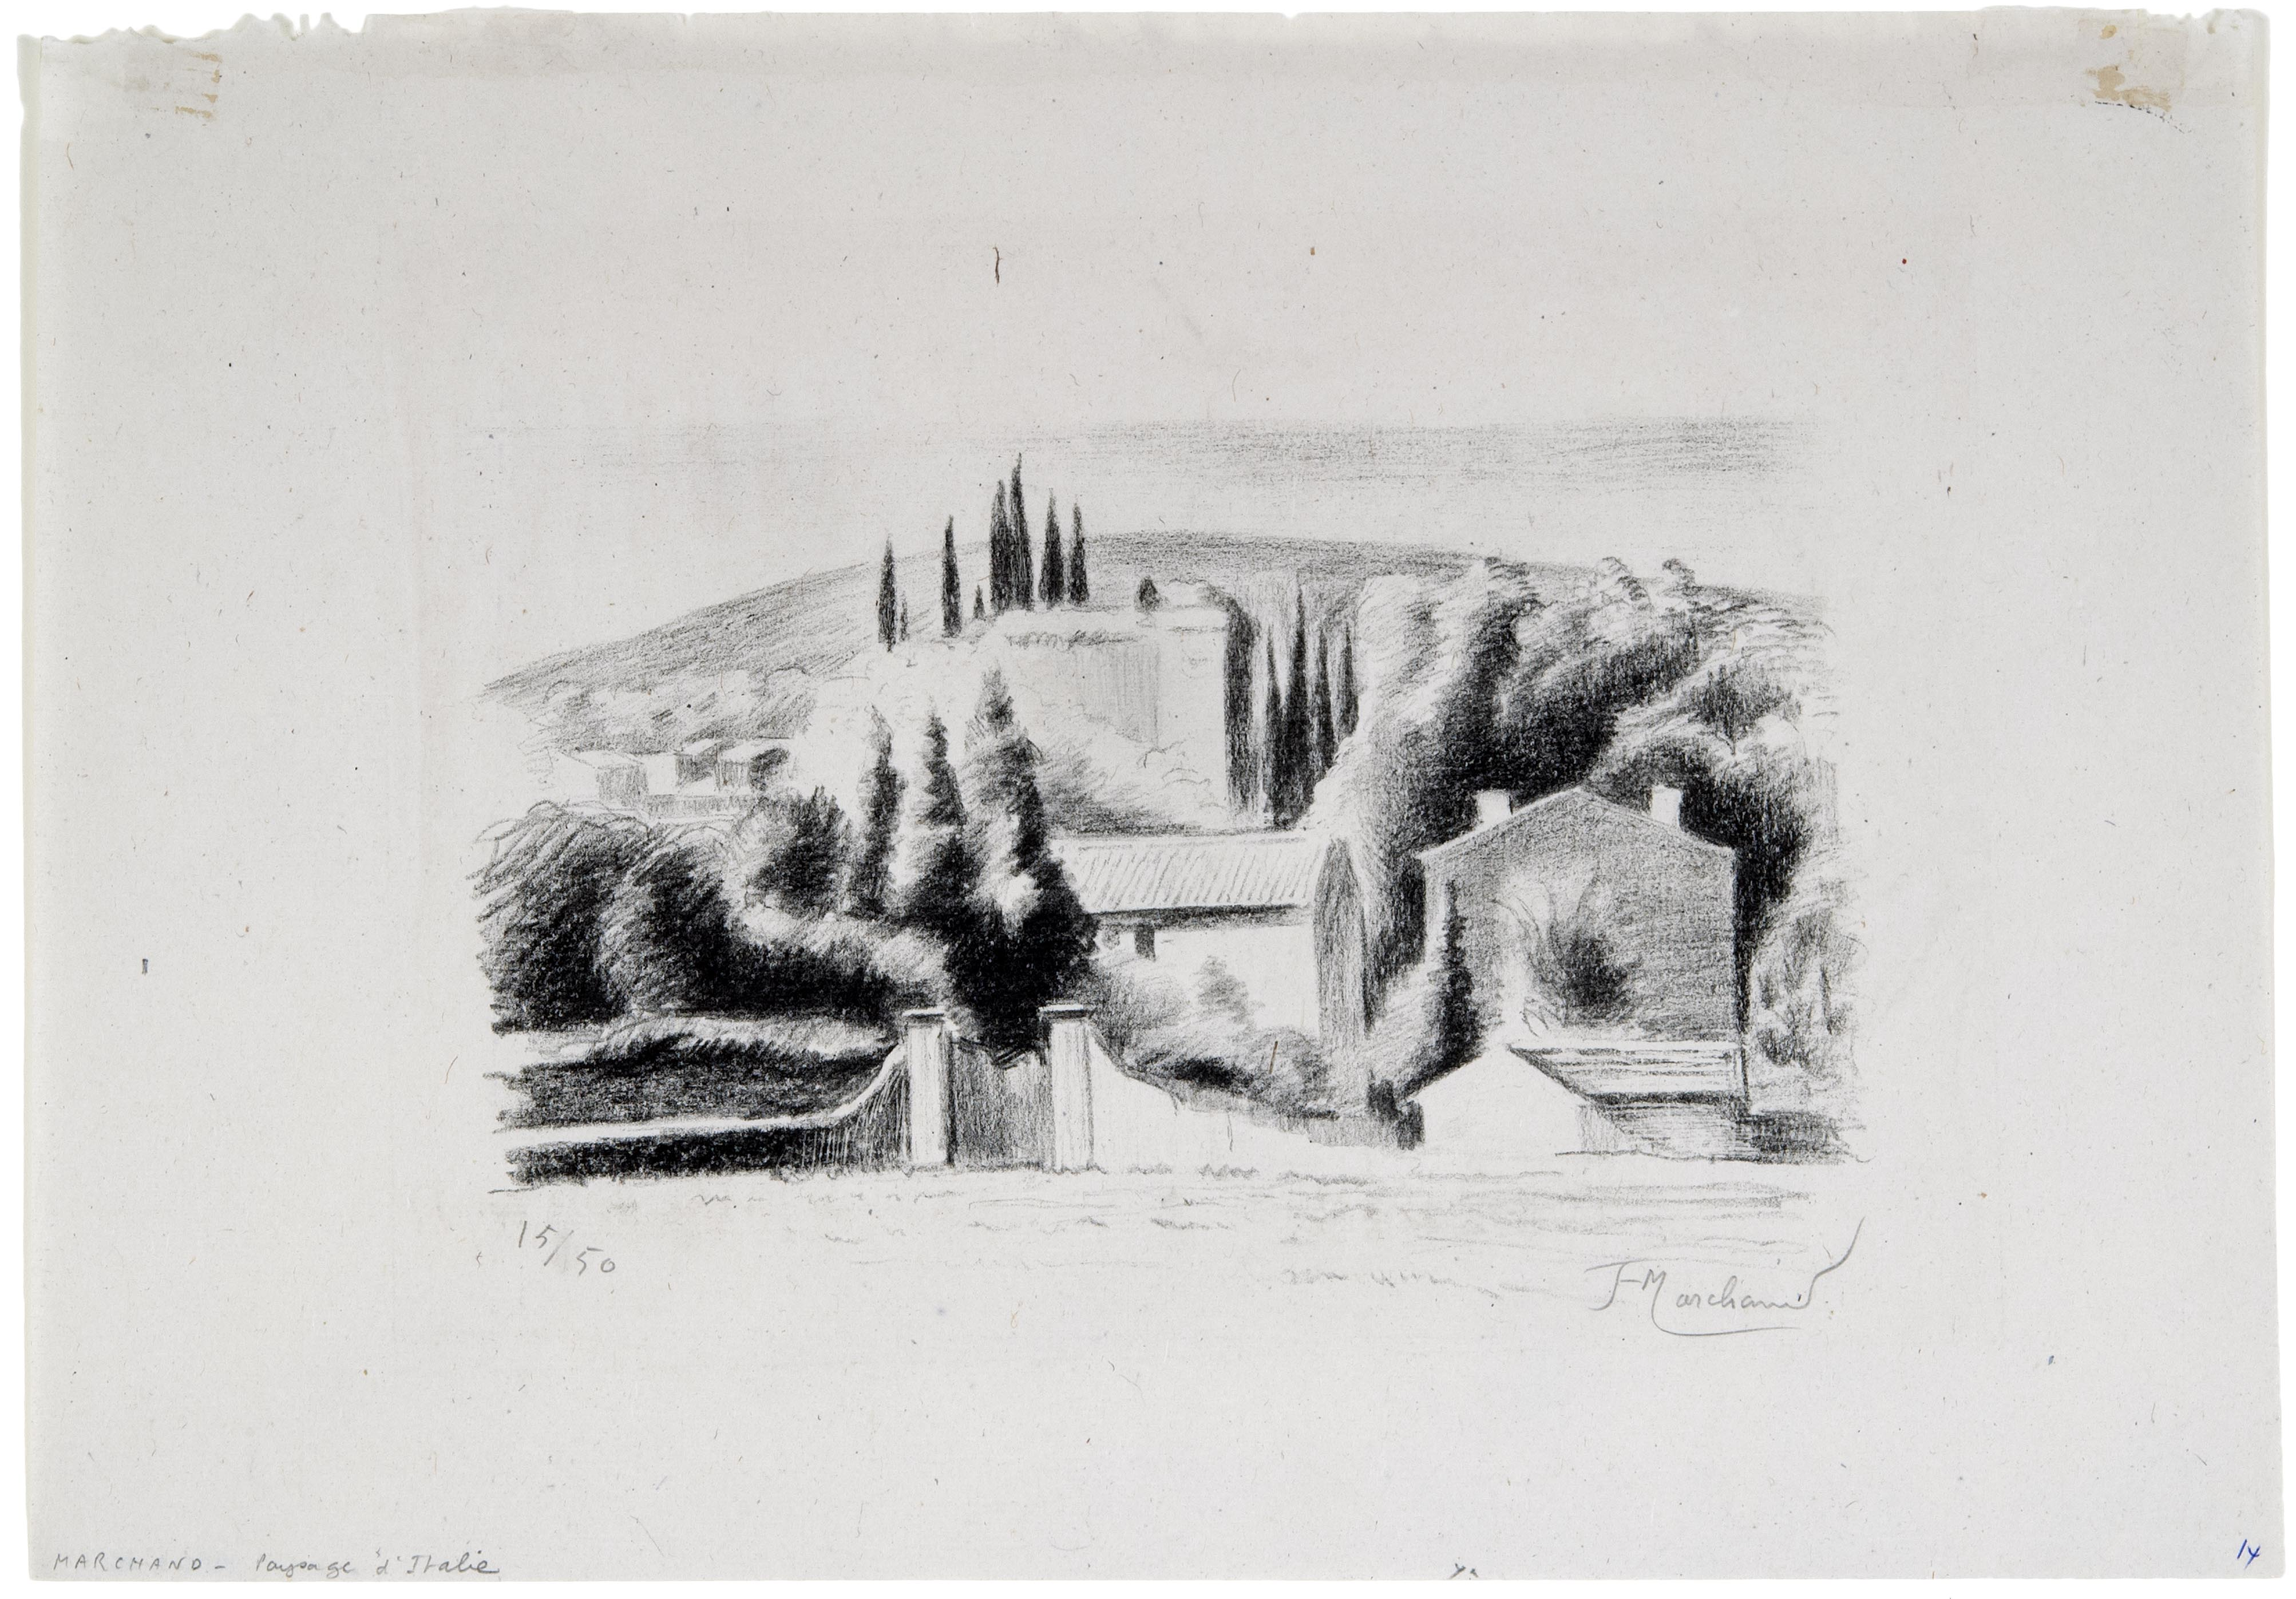 Jean Hippolyte Marchand, Paysage d'Italie, n.d.